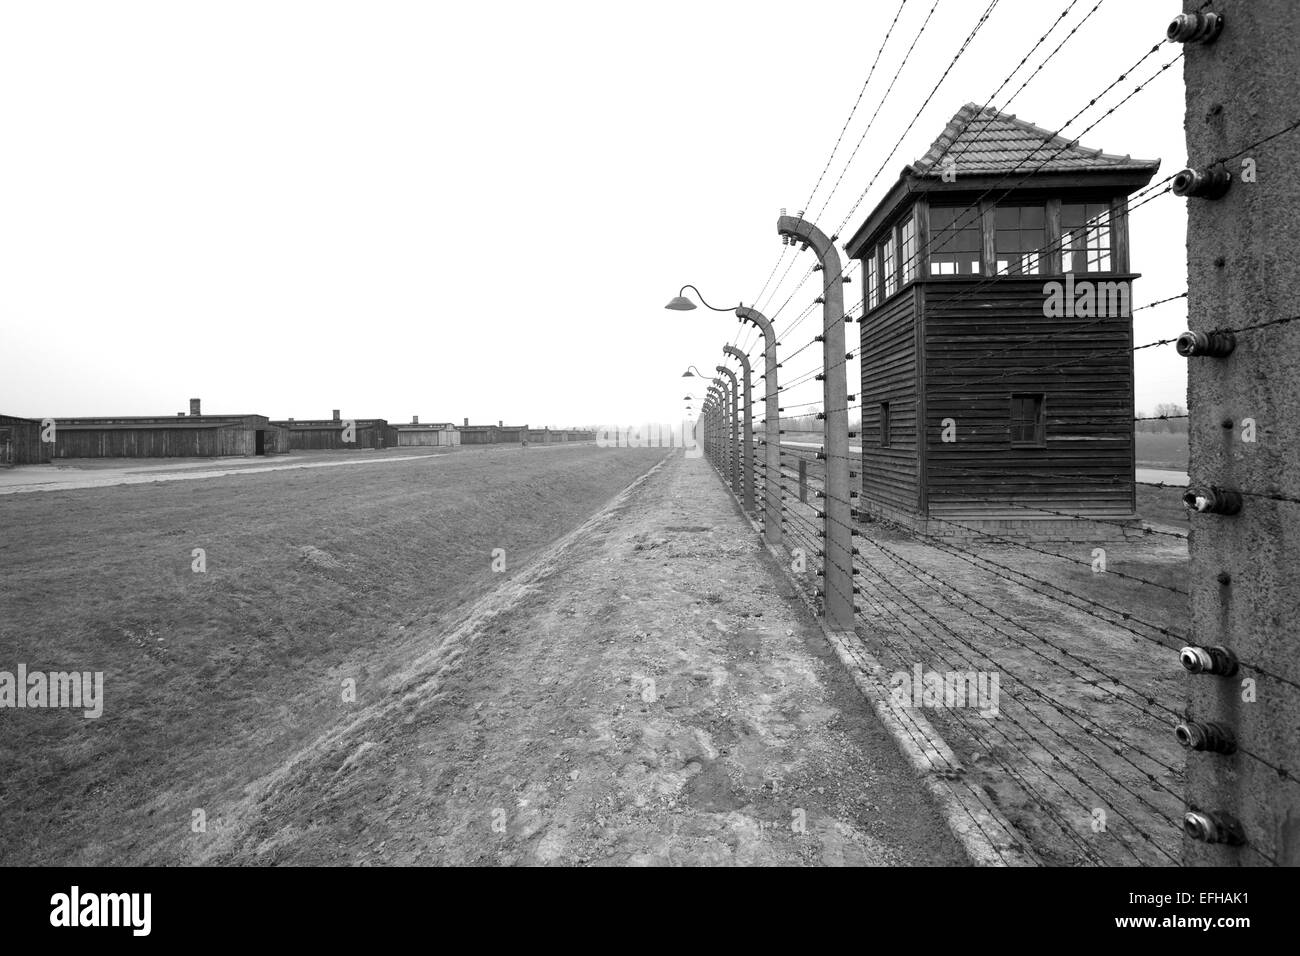 Auschwitz ll Birkenau Concentration Camp, Brzezinka, Poland, Europe - Stock Image